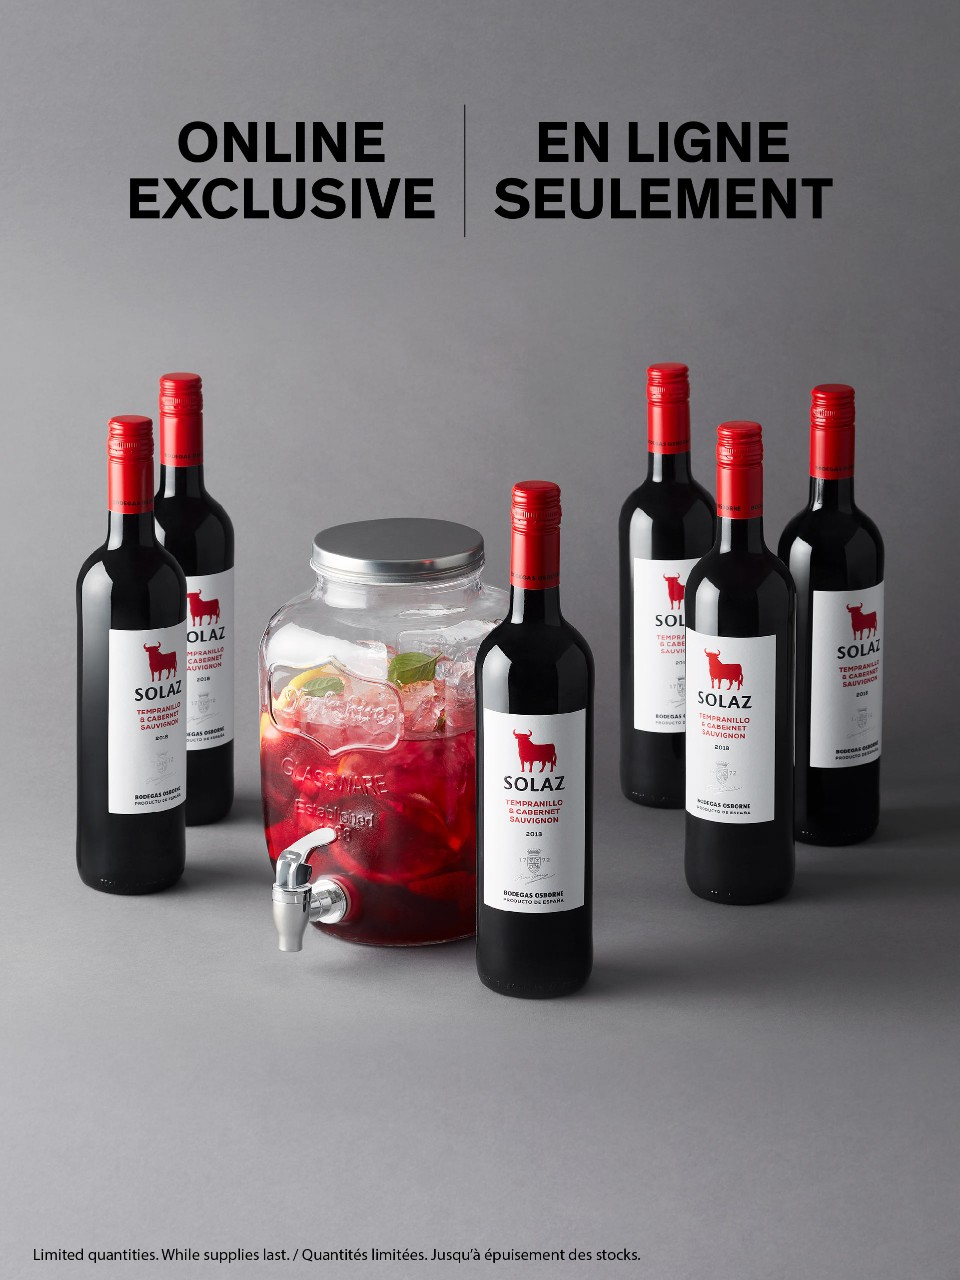 Osborne Solaz Tempranillo Cabernet Offer from LCBO